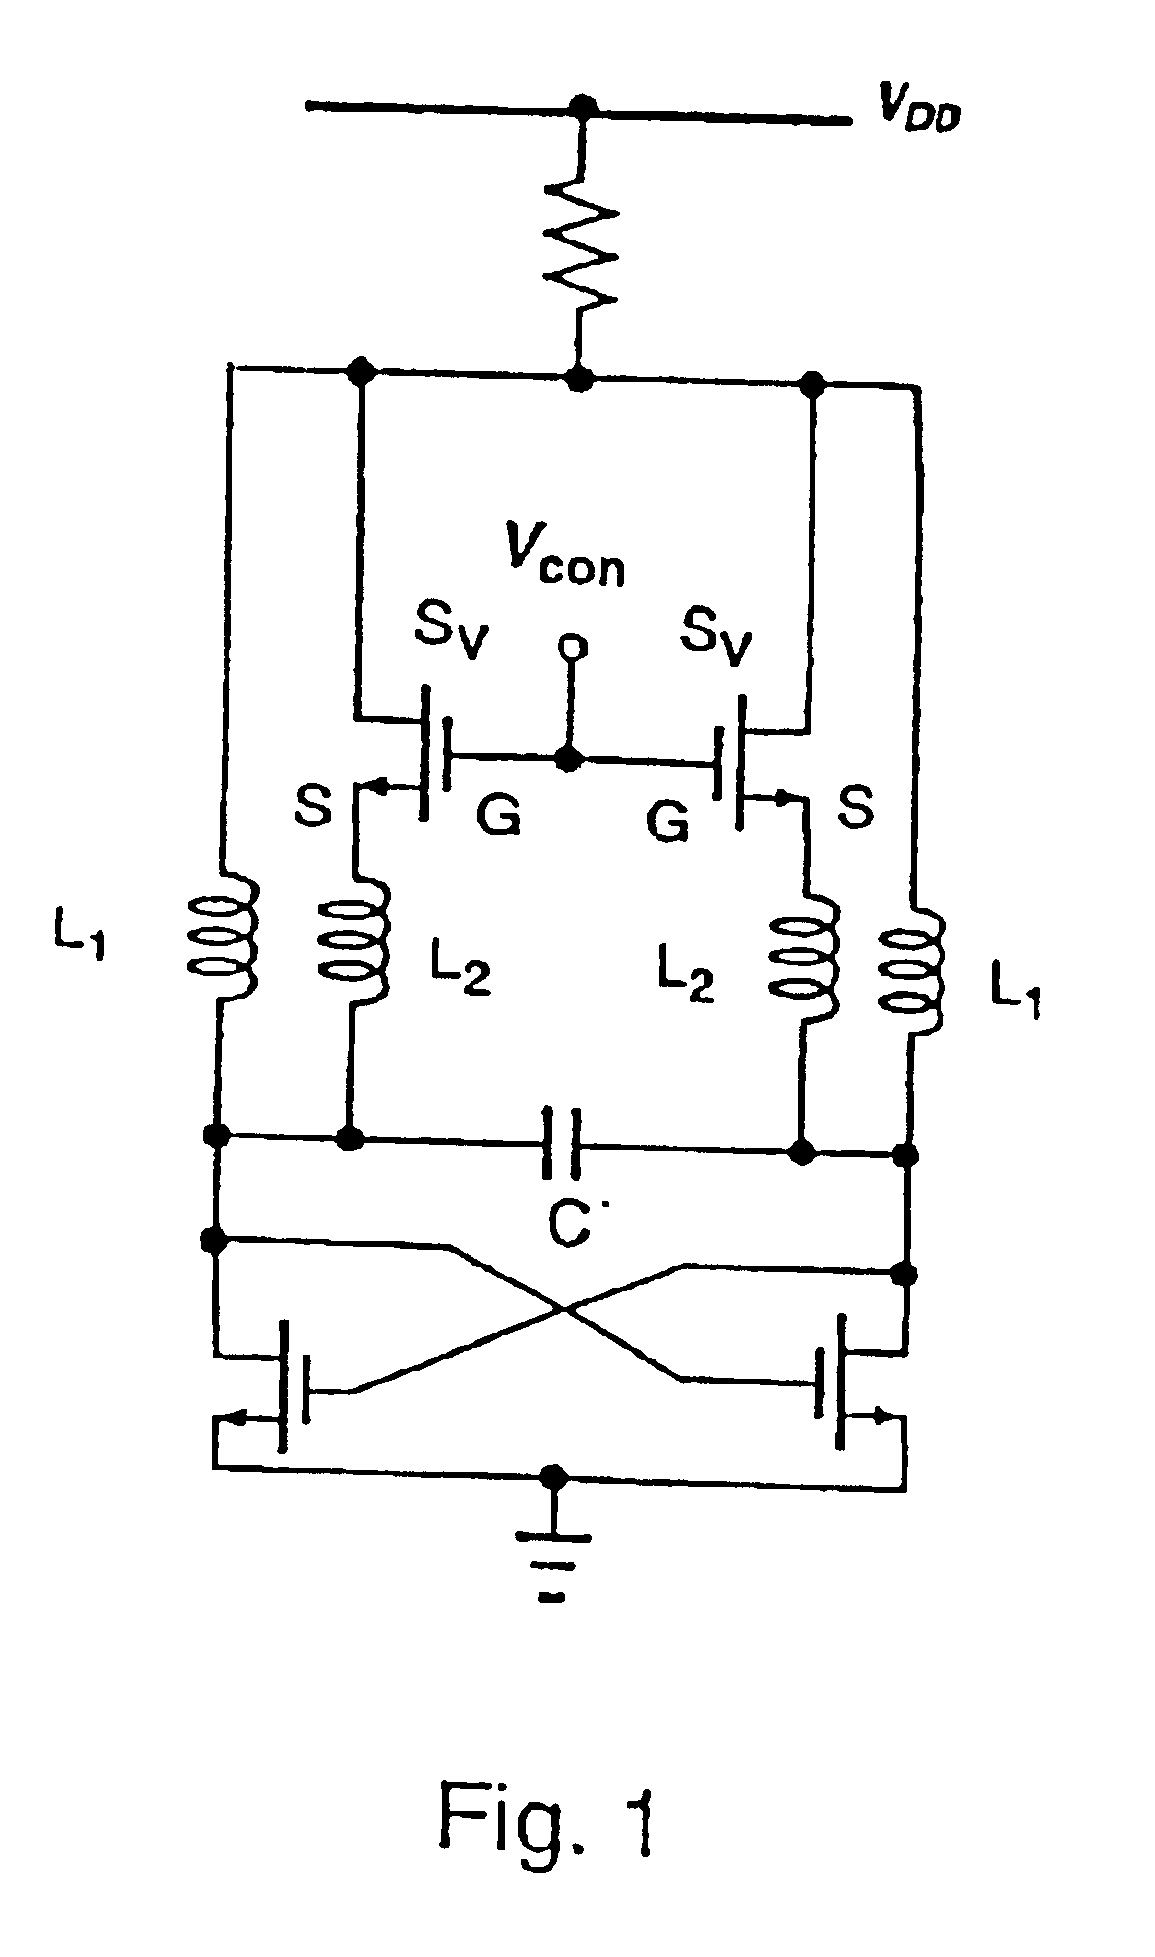 patent us6861913 - voltage-controlled oscillator with lc resonant circuit